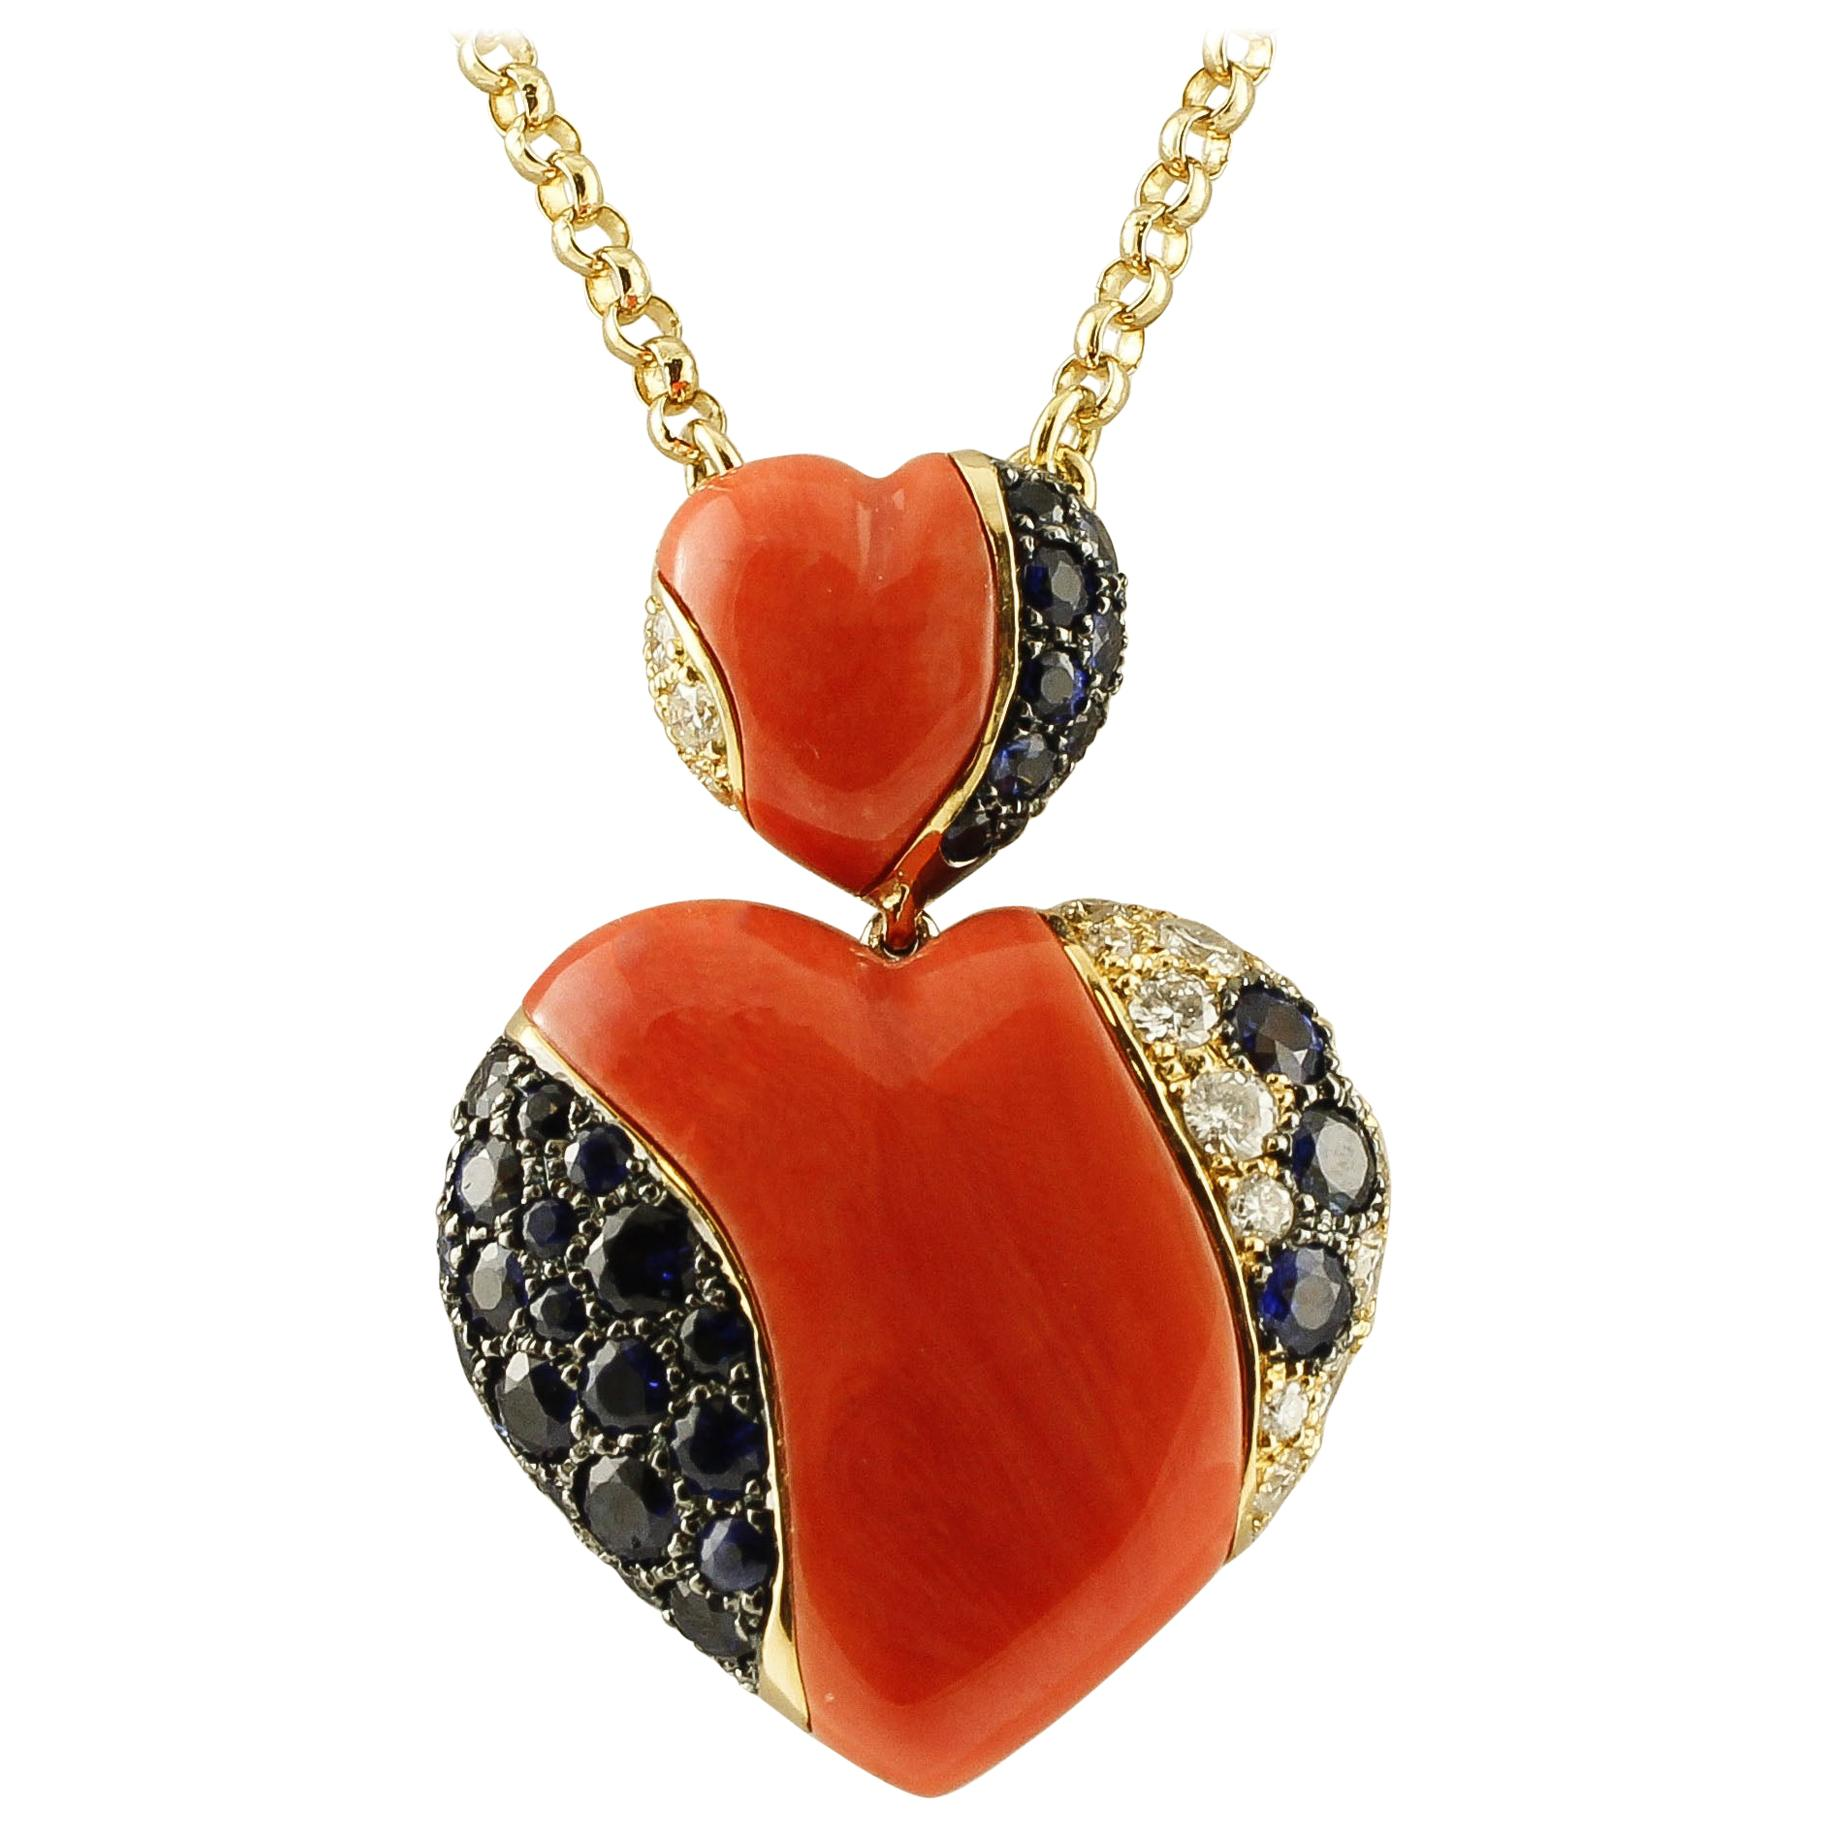 18K Gold Chain Necklace with Red Coral, Diamonds & Sapphire Heart Pendant